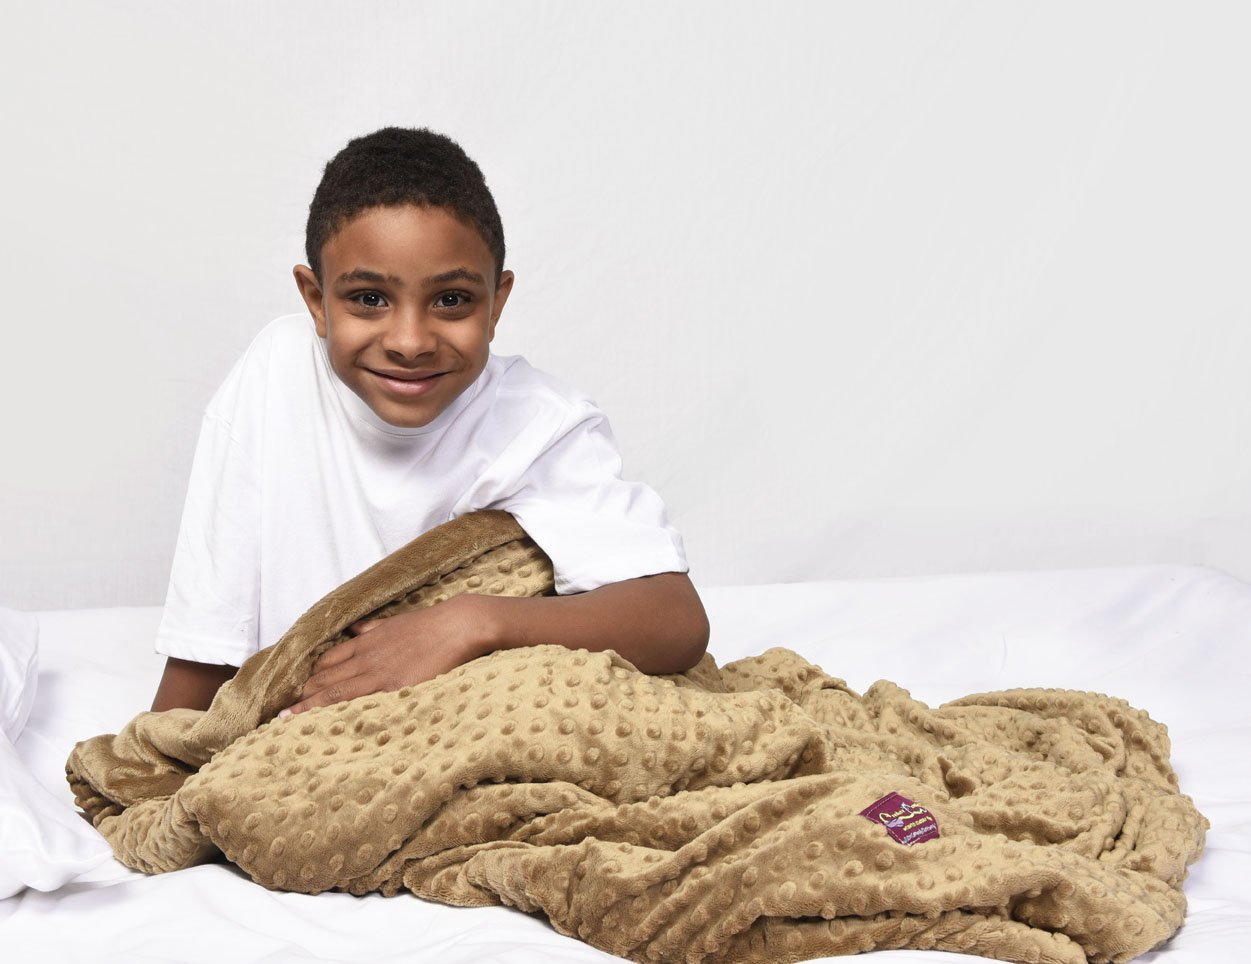 Creature Commforts Weighted Blanket - Large 12 lbs 35'' x 50'' for kids, adults - Removable cover, soft minky duvet, organic insert - Heavy sensory blanket made in USA - Tan